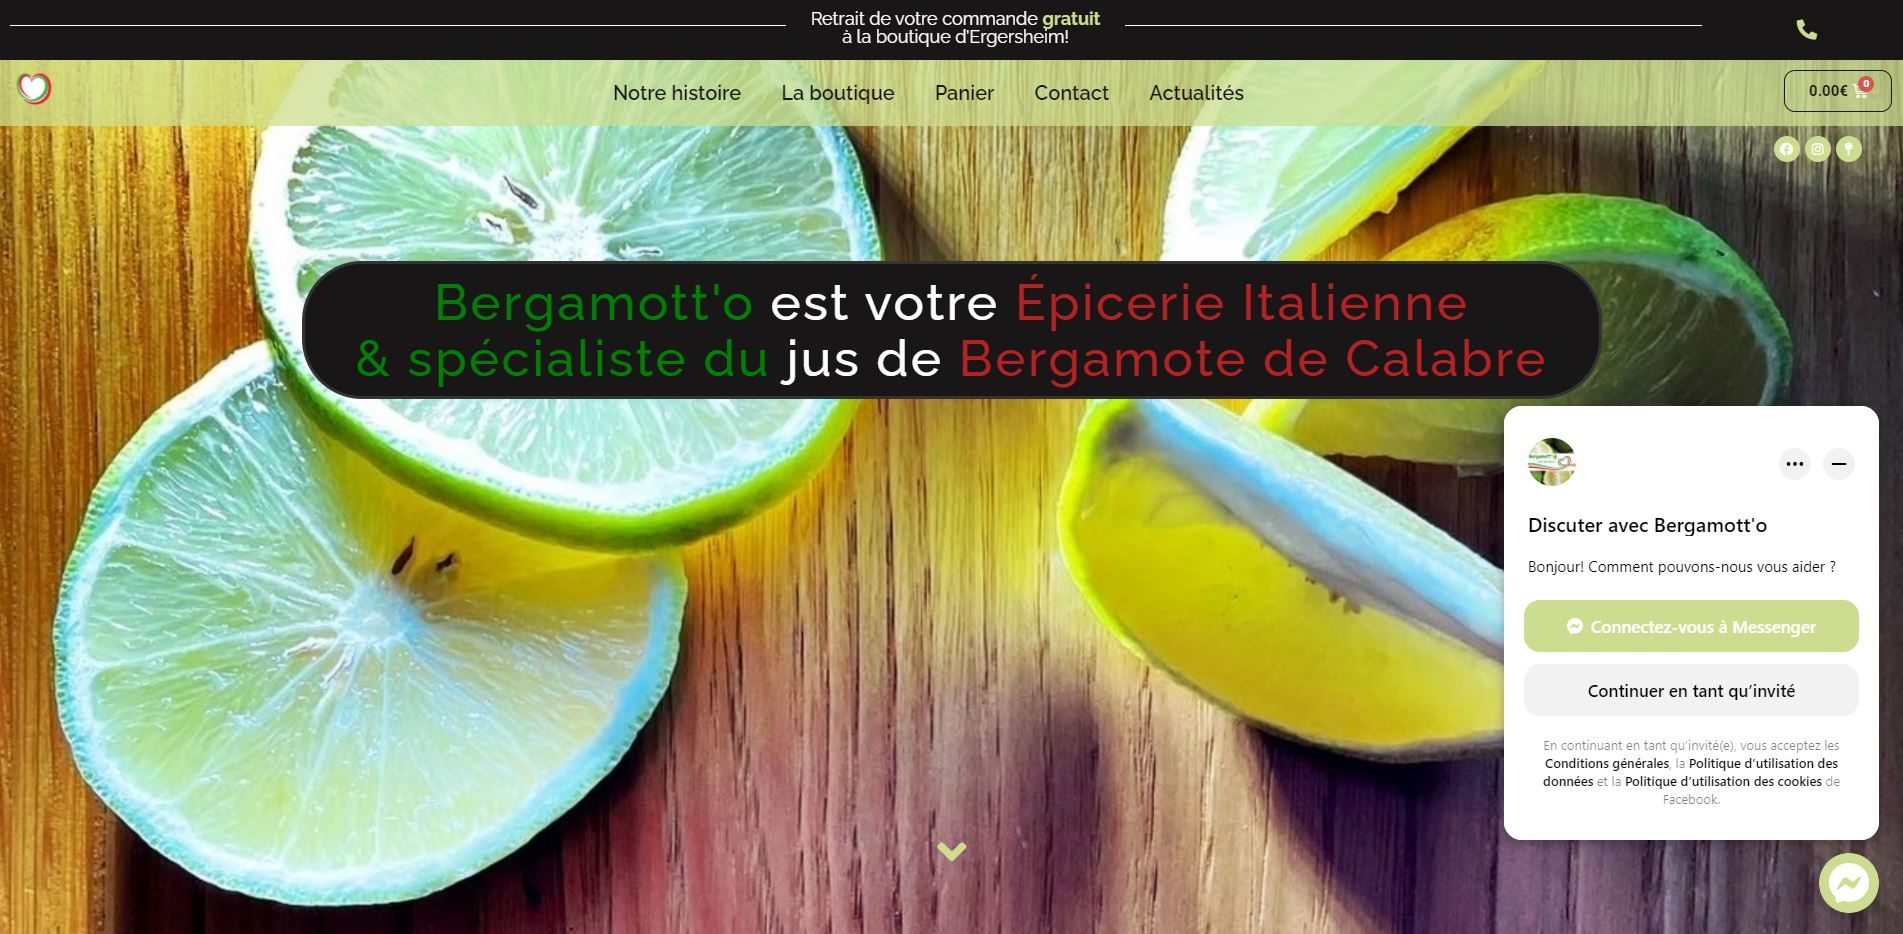 Bergamott-o image du Site E-Commerce